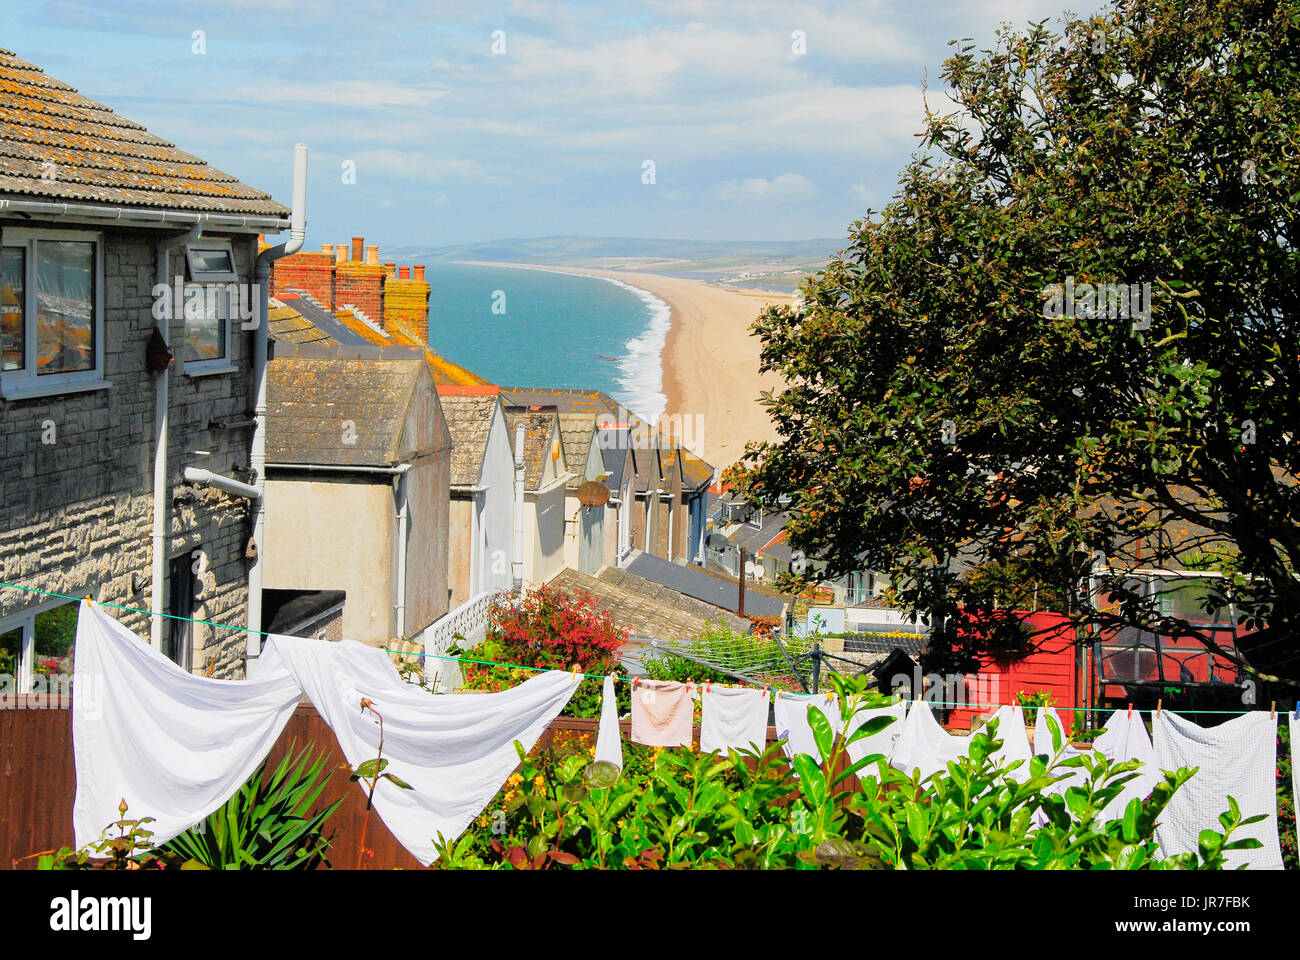 Chesil Beach, Dorset. 04th Aug, 2017. UK Weather: Washing dries in a sunny Fortuneswell garden on a breezy & bright day in Dorset Credit: stuart fretwell/Alamy Live News - Stock Image